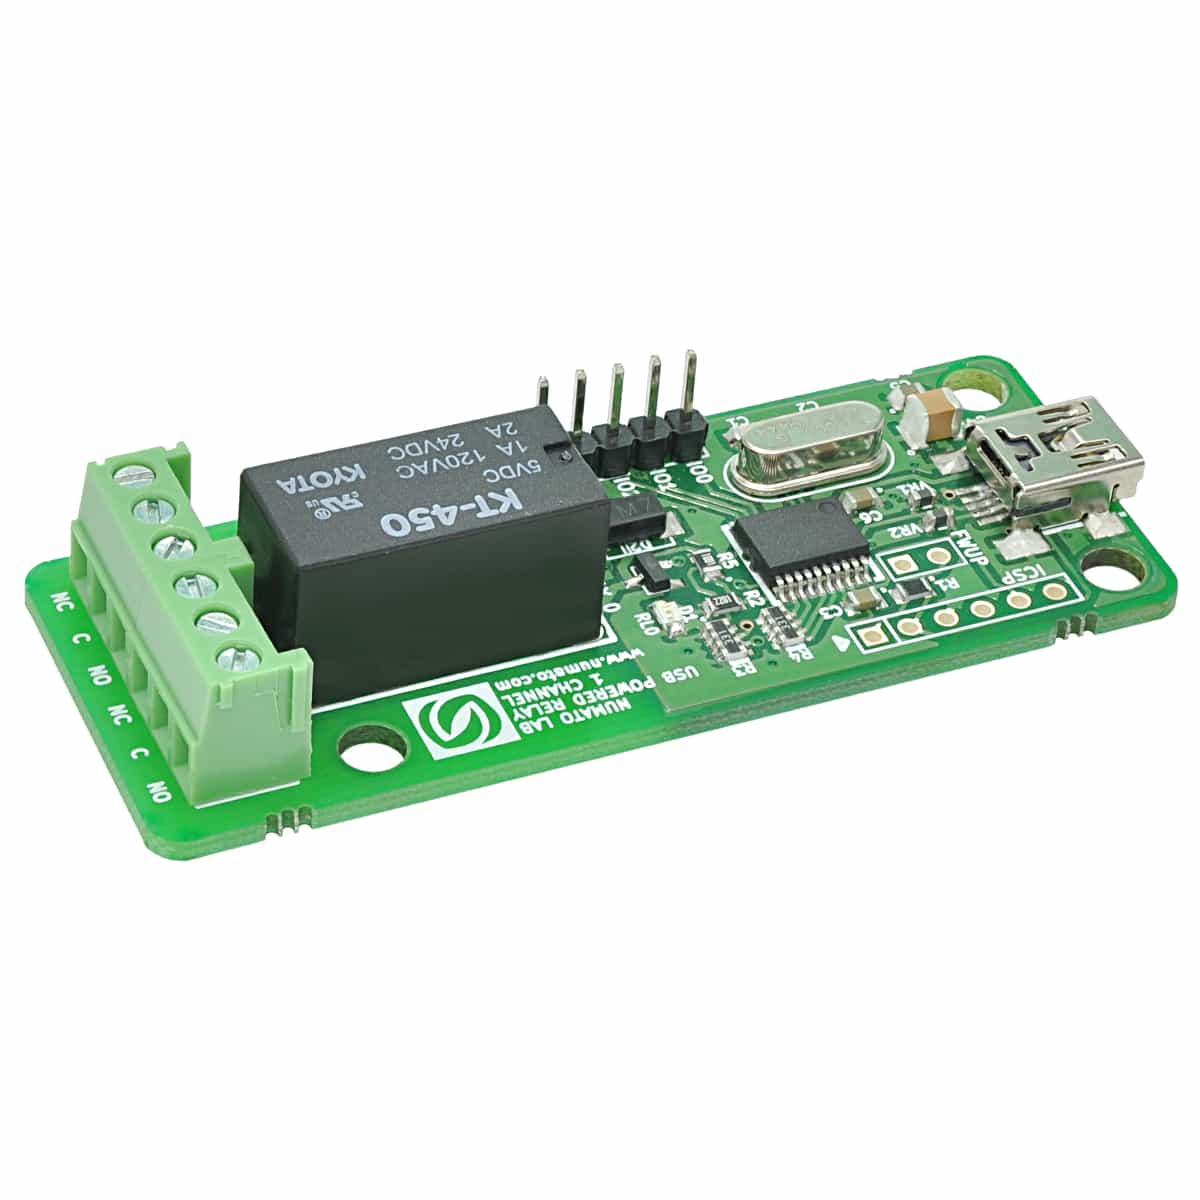 1 Channel Usb Powered Relay Module With Gpio Numato Lab Usbpowered Pic Programmer Circuit Schematic